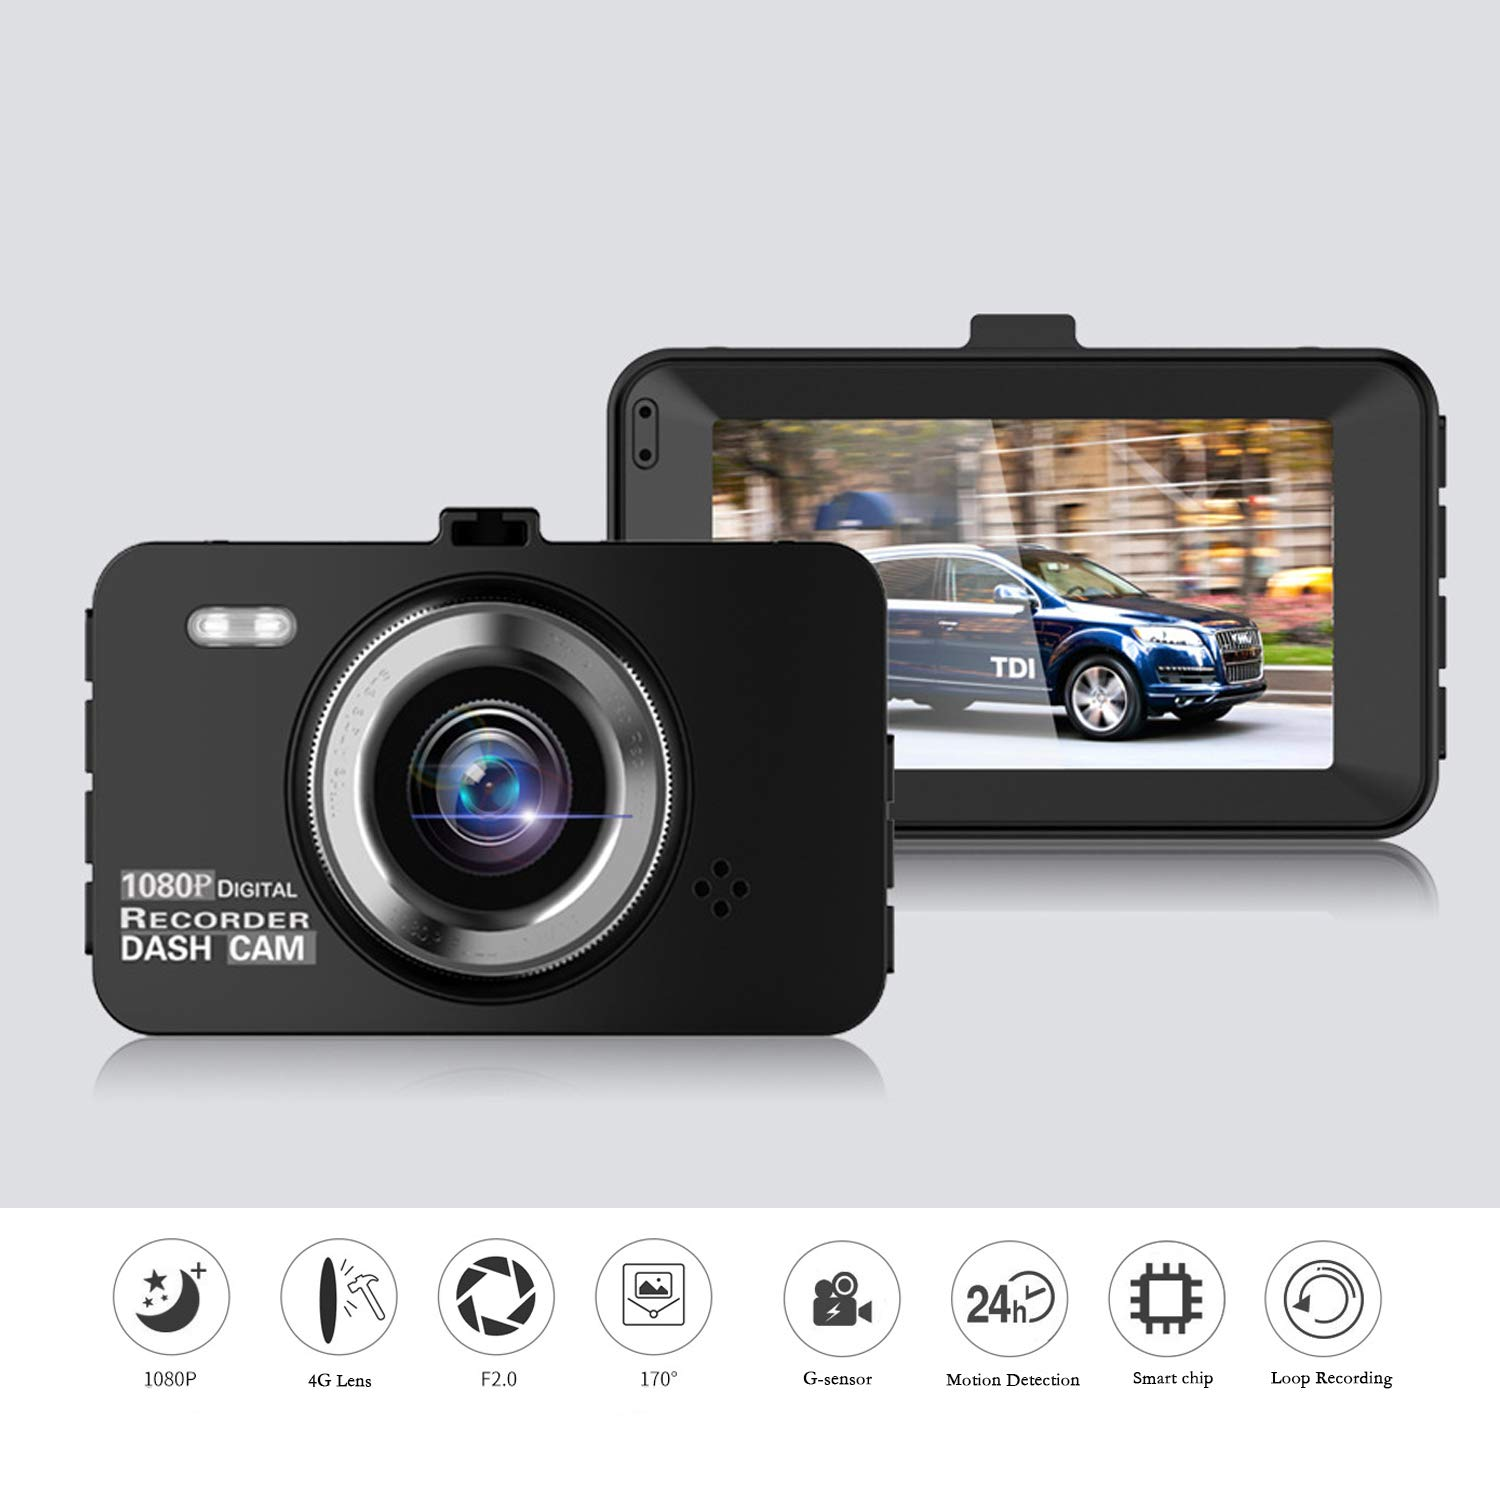 Dash Cam 1080P FHD Night Vision Car DVR Dashboard Camera Recorder with 3 IPS Screen, 170 Wide Angle, G-Sensor, WDR, Loop Recording and Motion Function